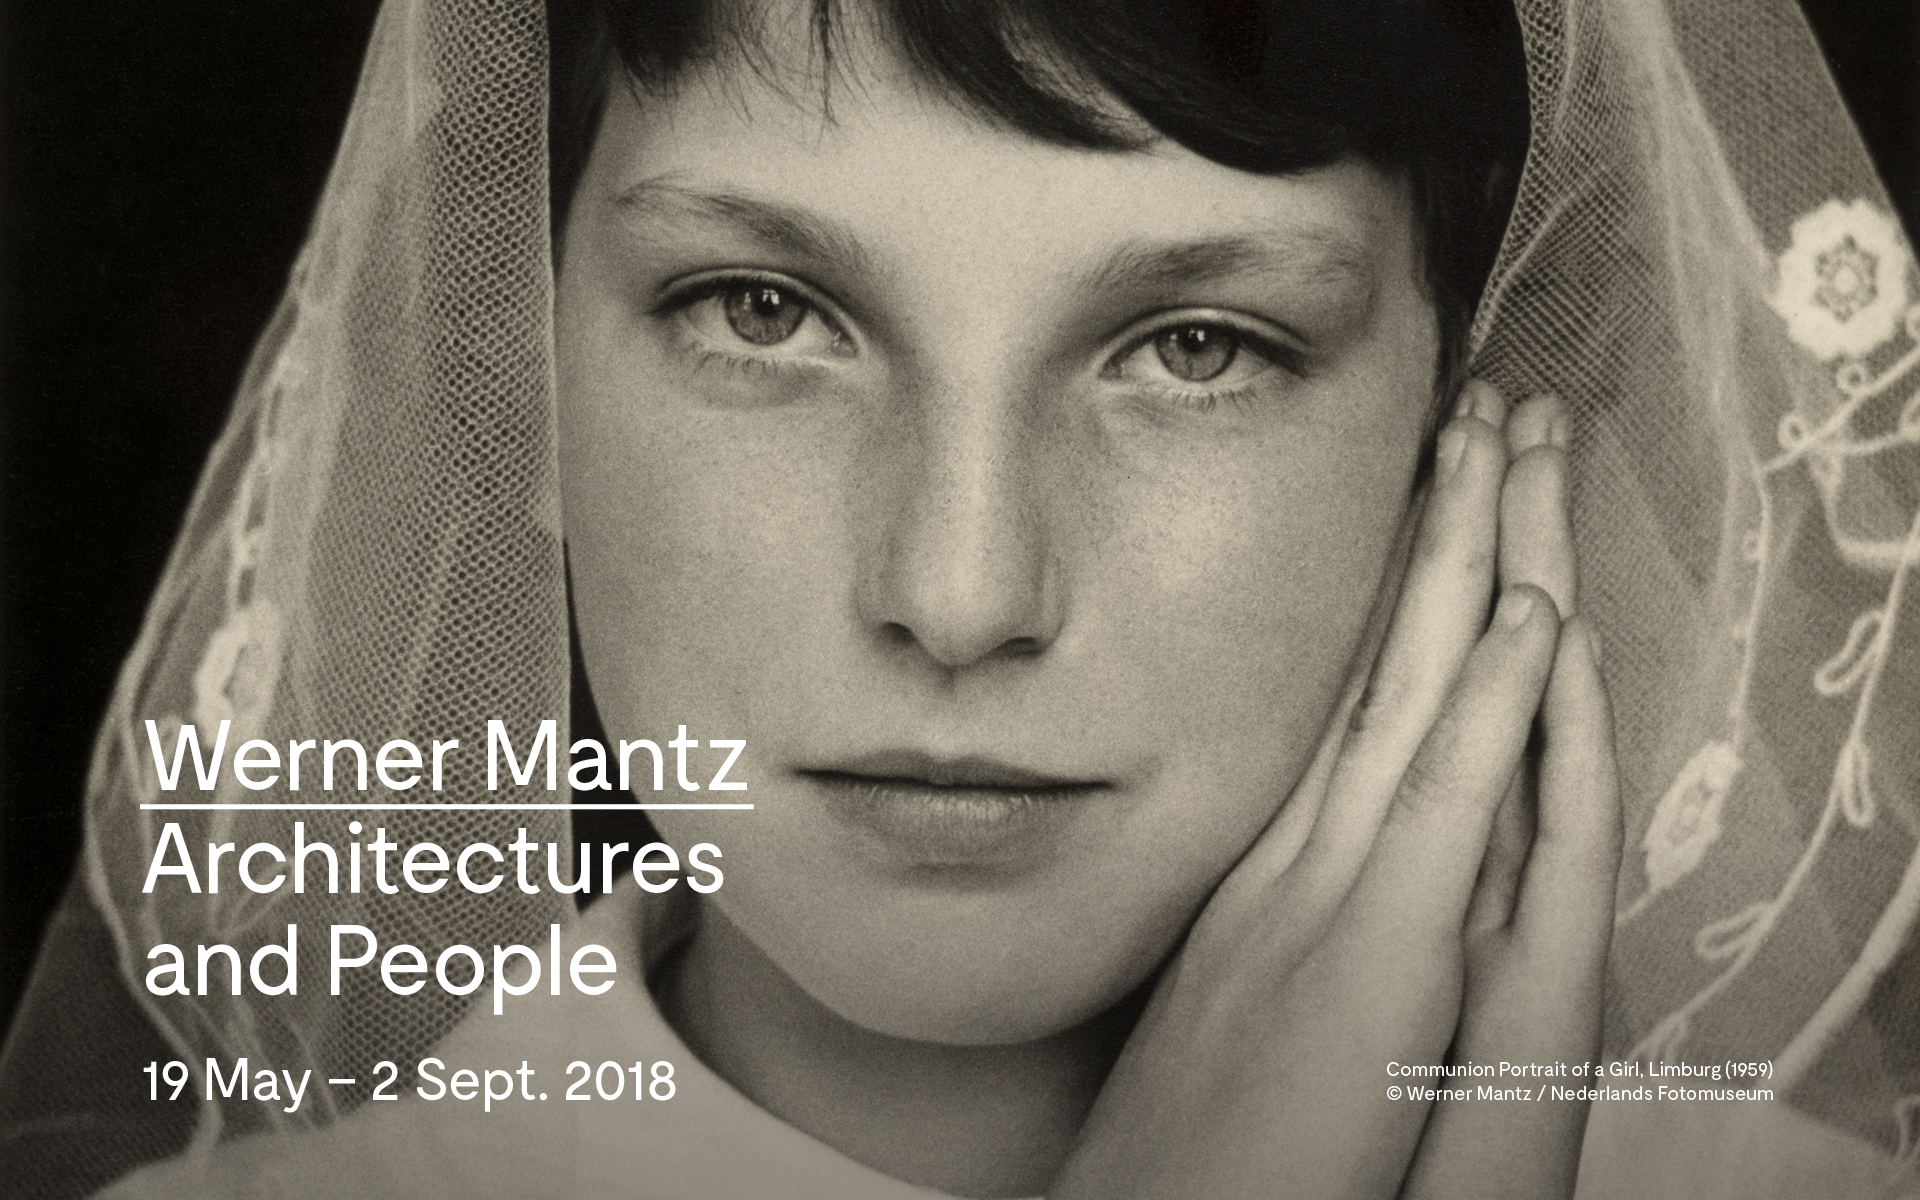 werner-mantz-architectures-and-people